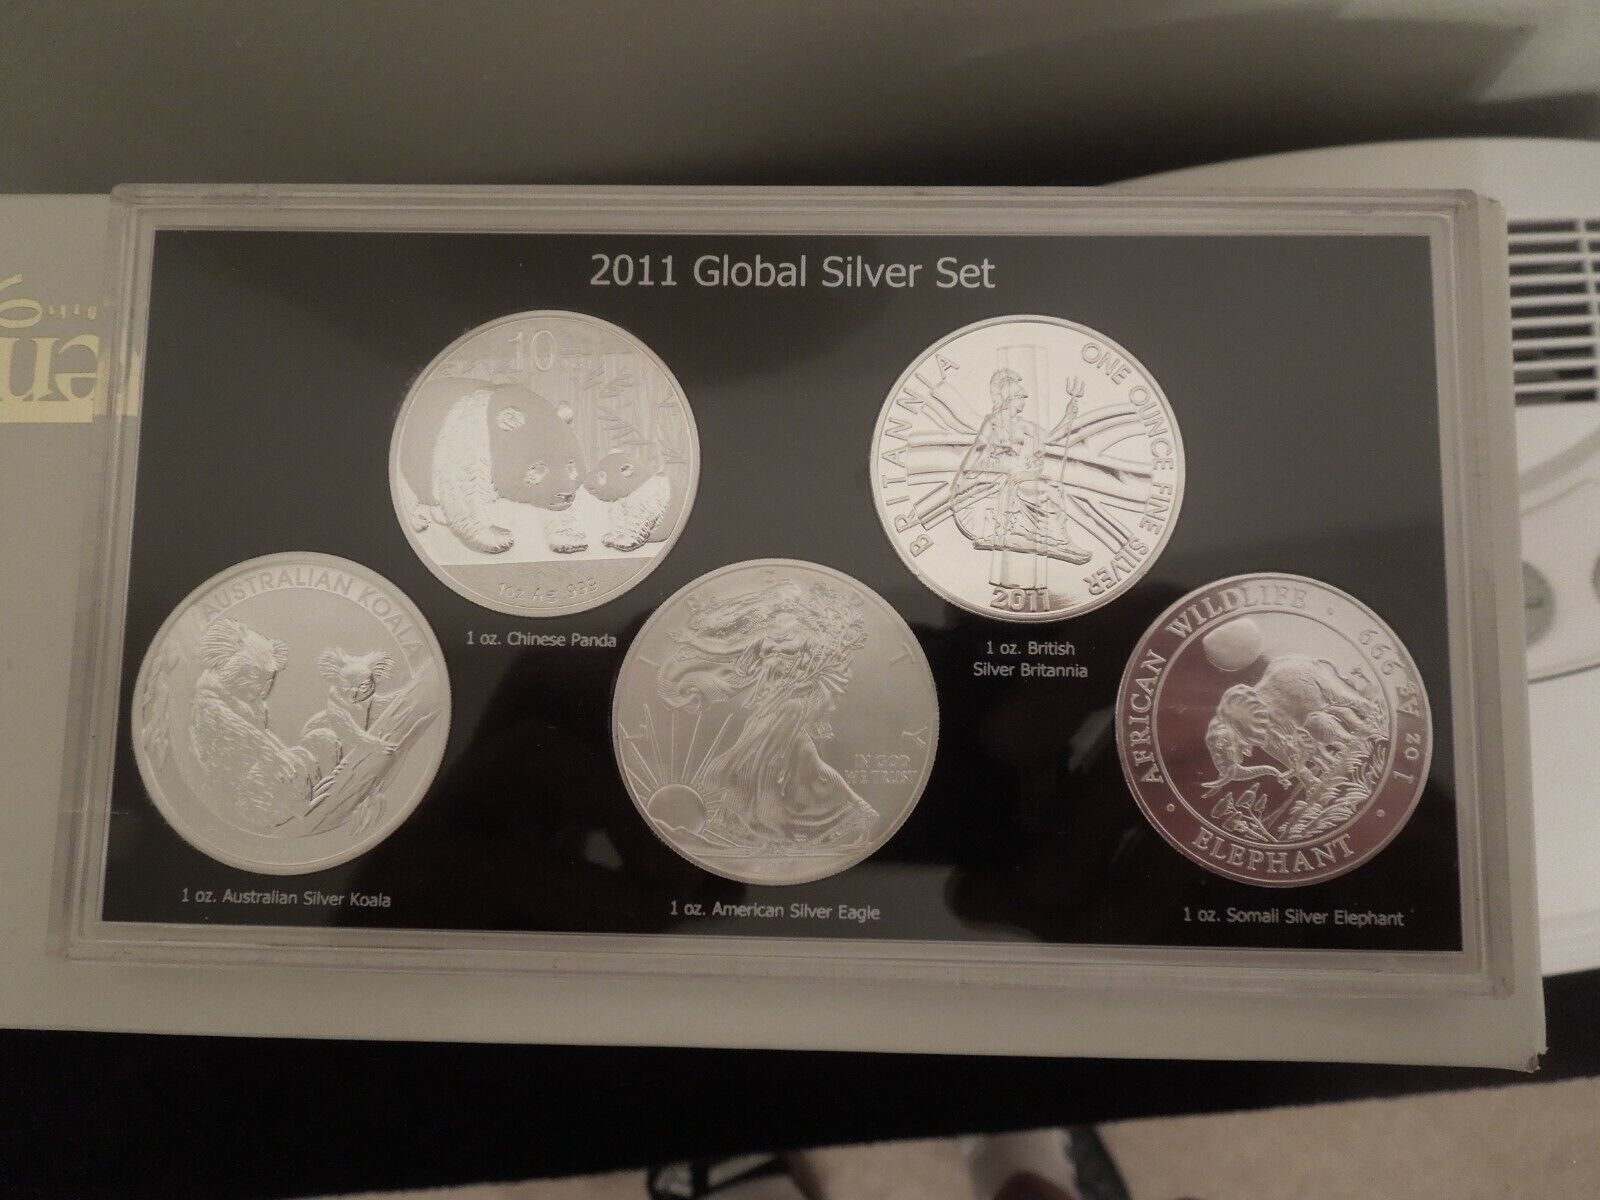 2011 GLOBAL SILVER SET 5 COINS - $150.00